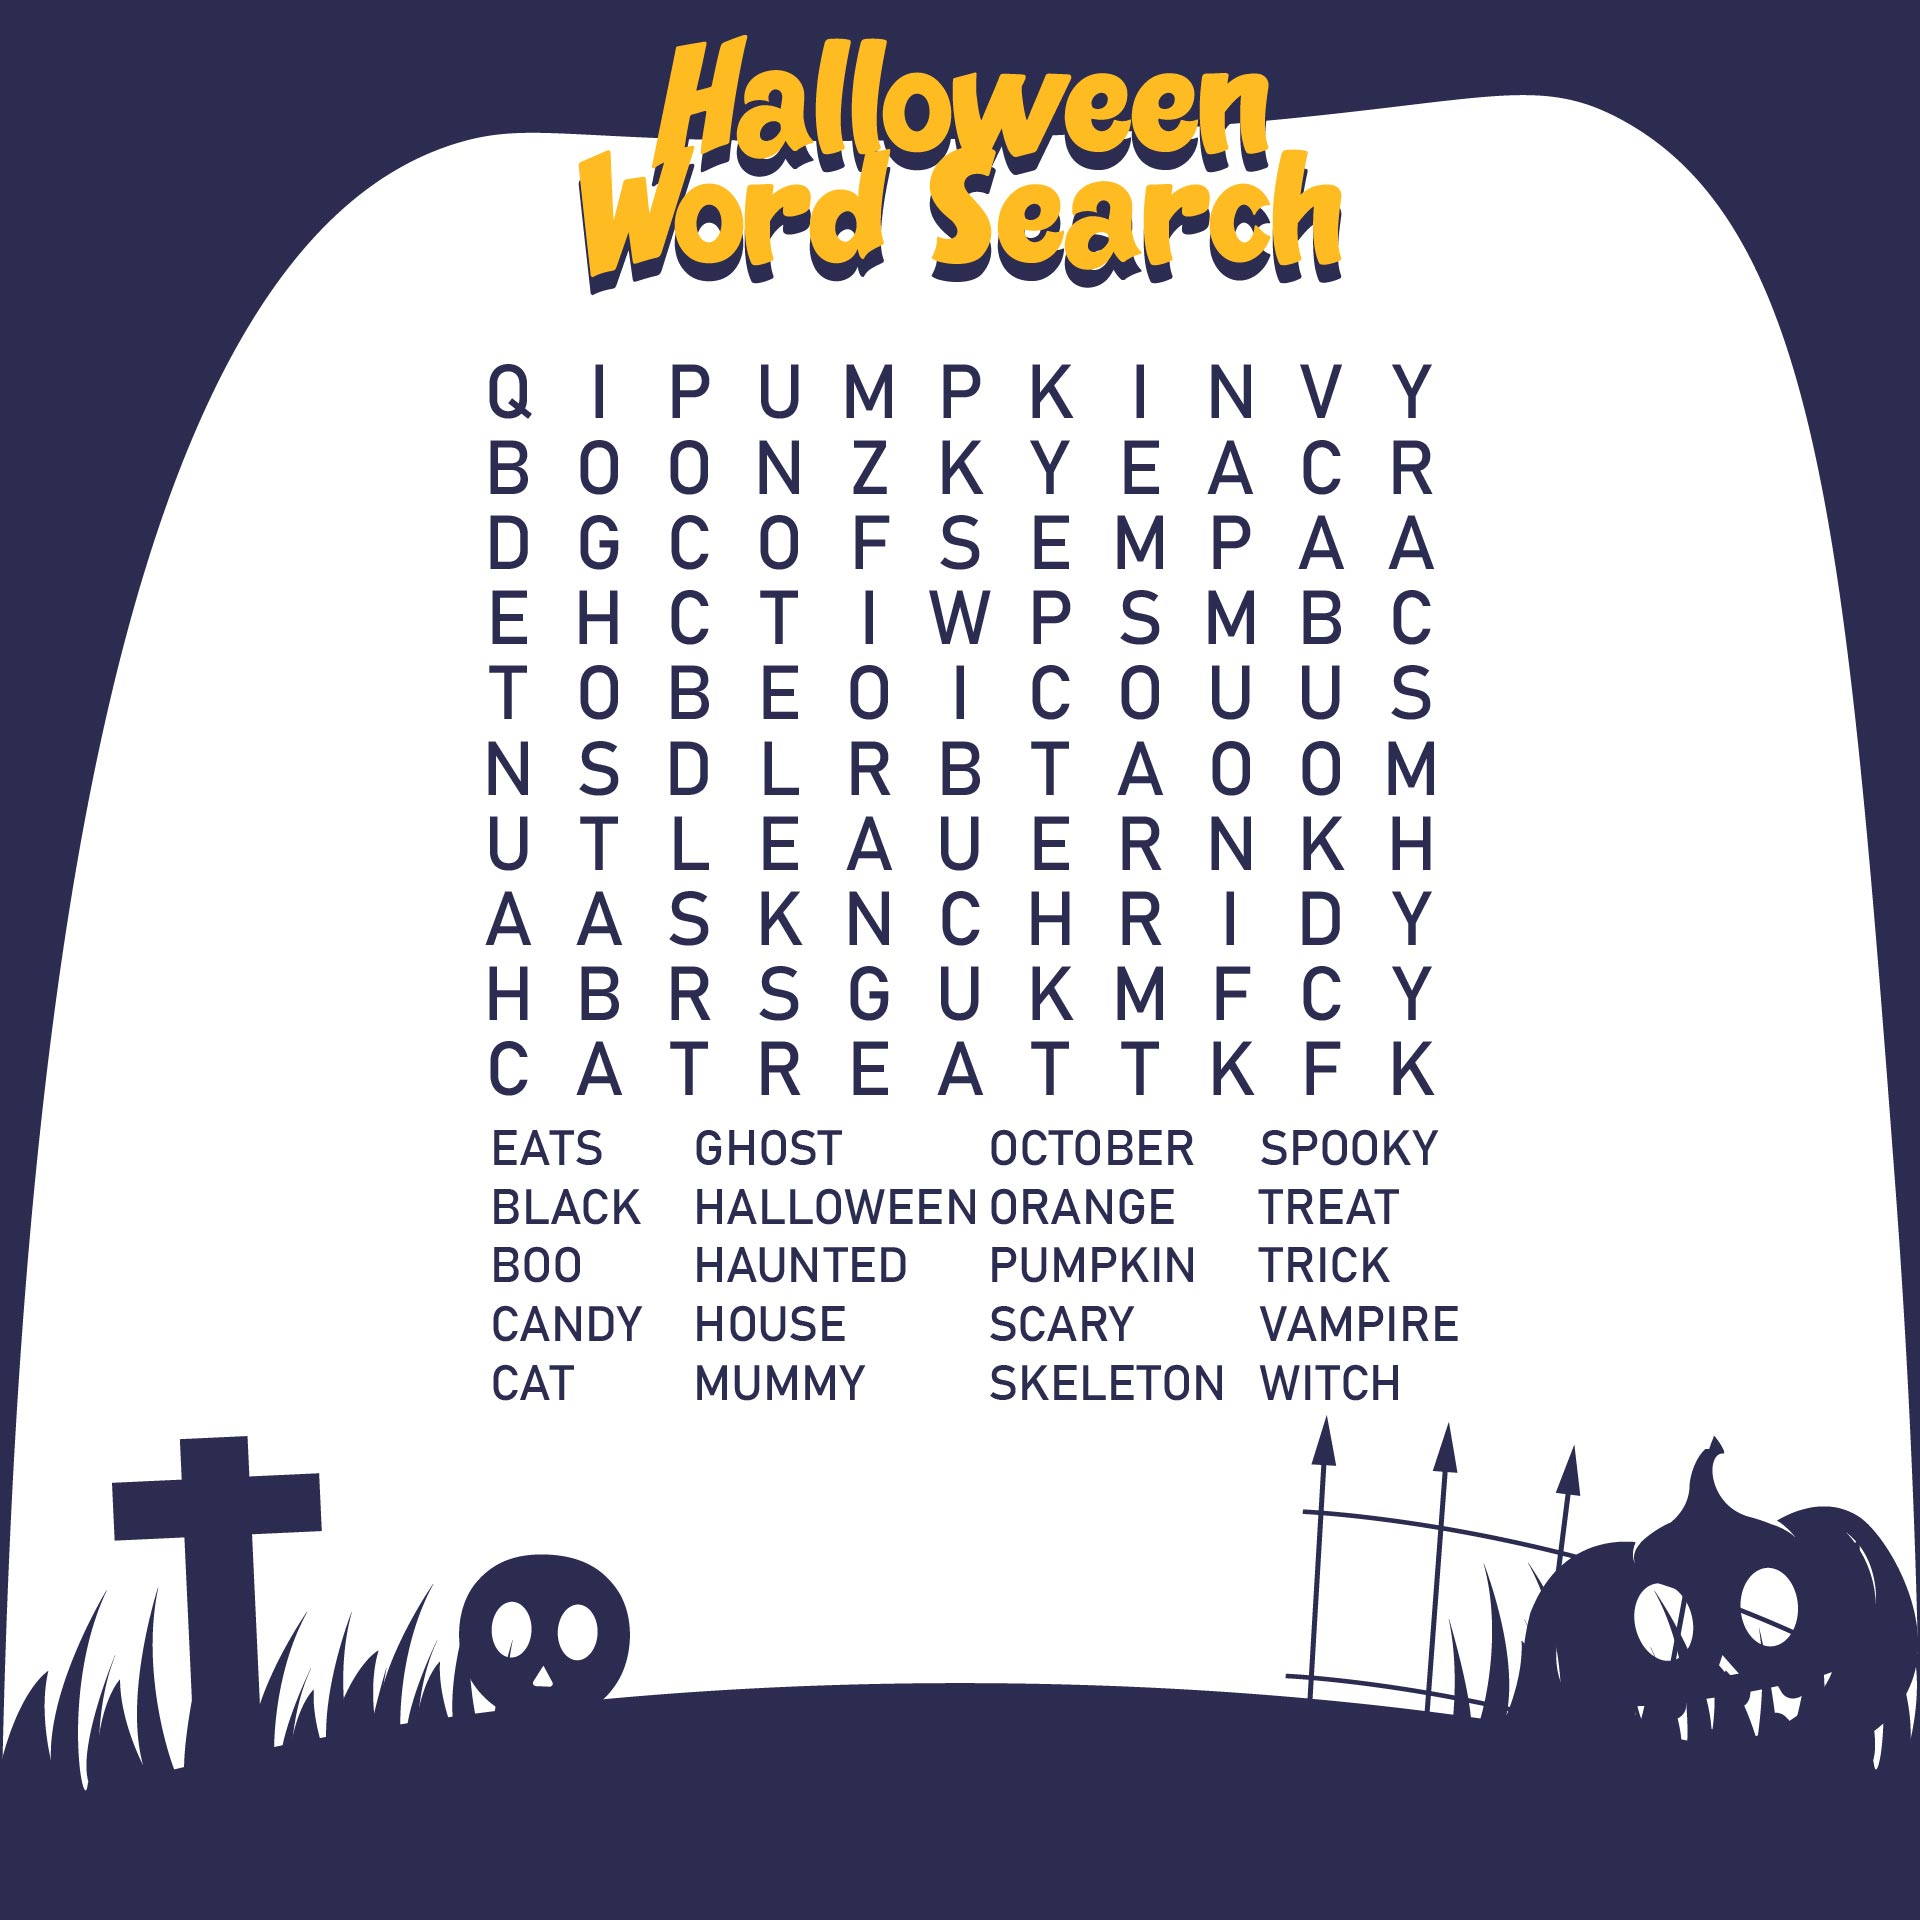 Free Printable Halloween Word Search Puzzles For Adults